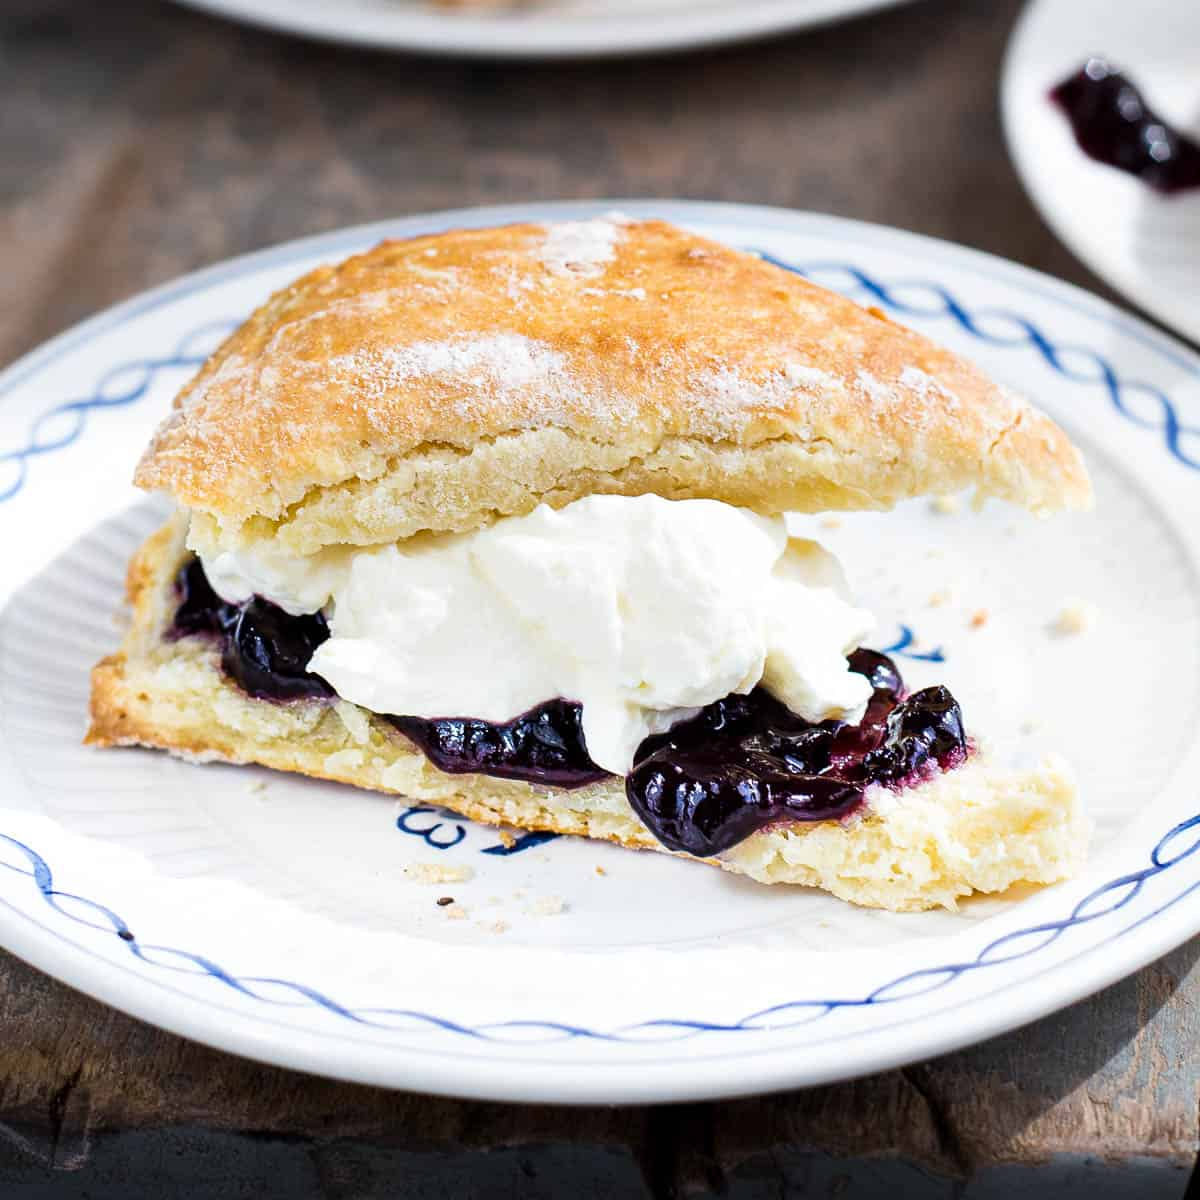 A fresh scone on a plate, filled with jam and cream.